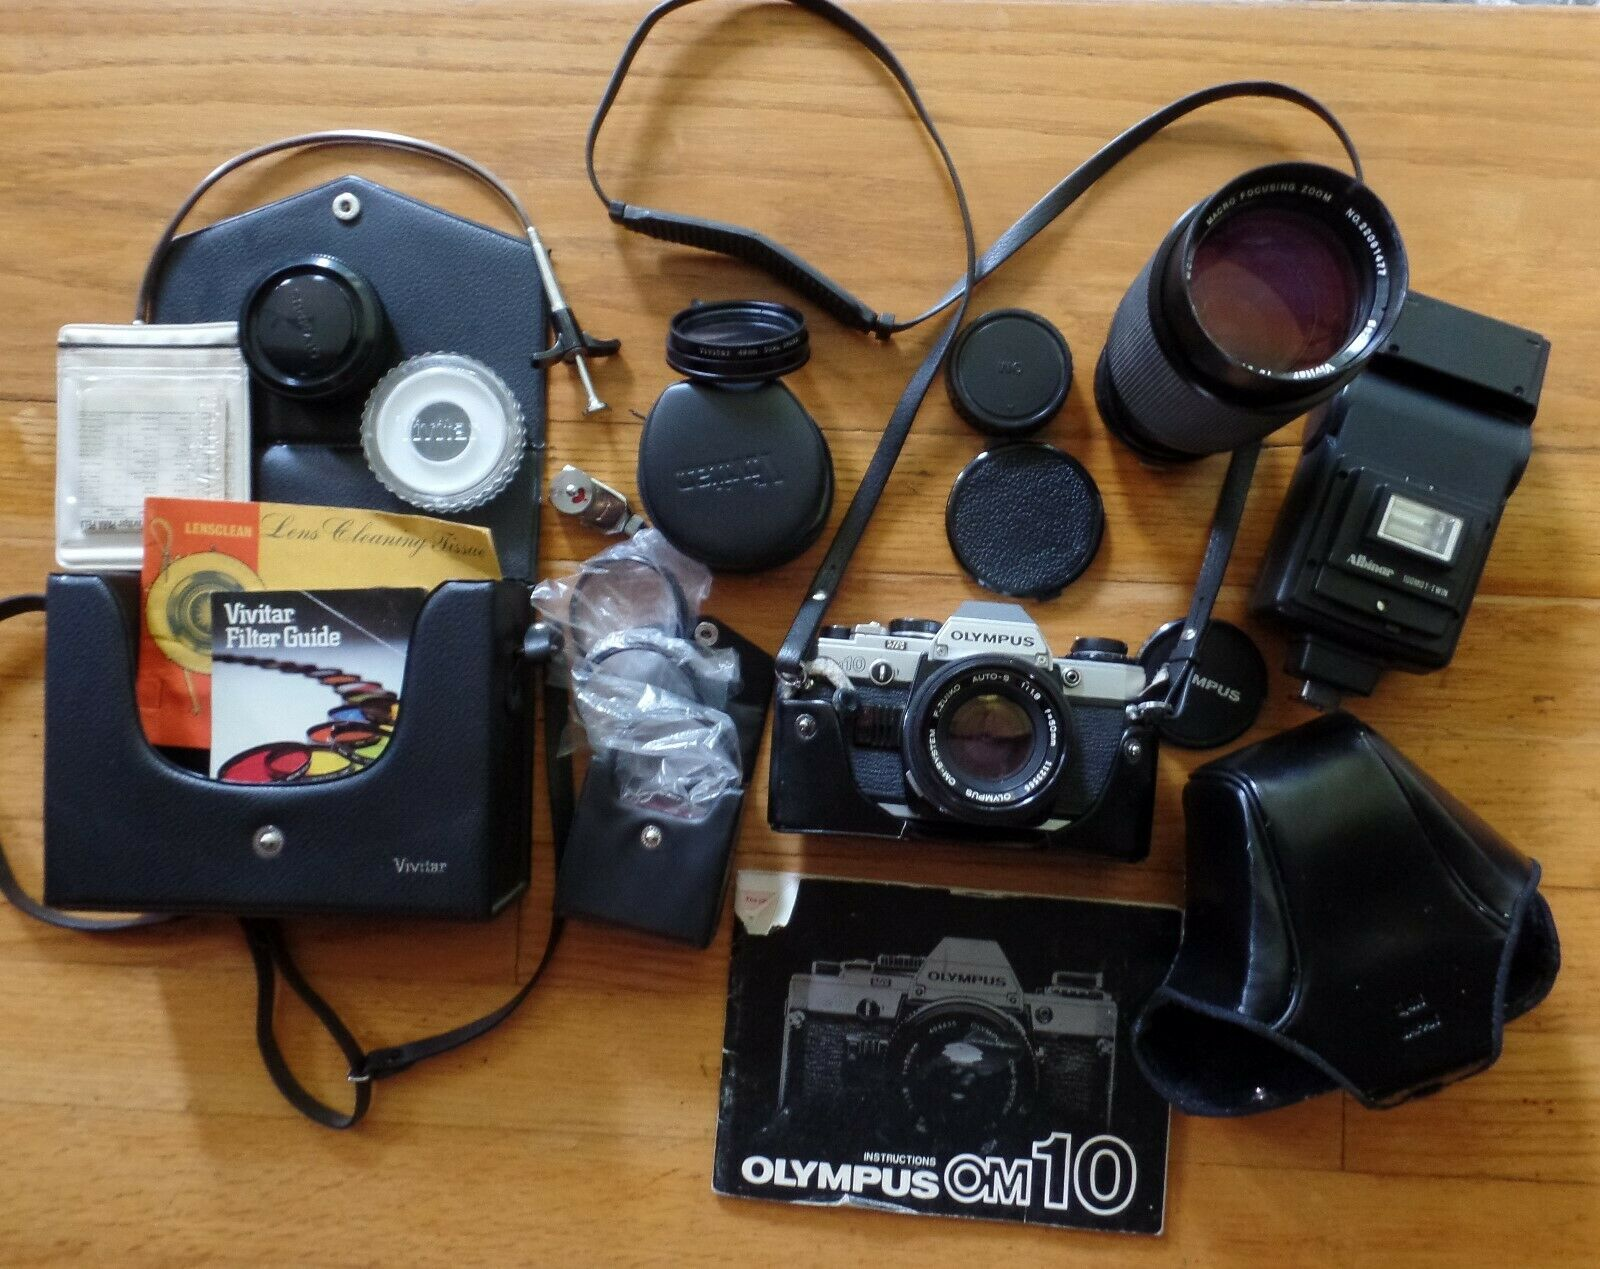 VINTAGE OM10 CAMERA WITH 50mm LENS, CASES, FLASH, FILTERS, PAPERS ACCESSORIES - $72.00